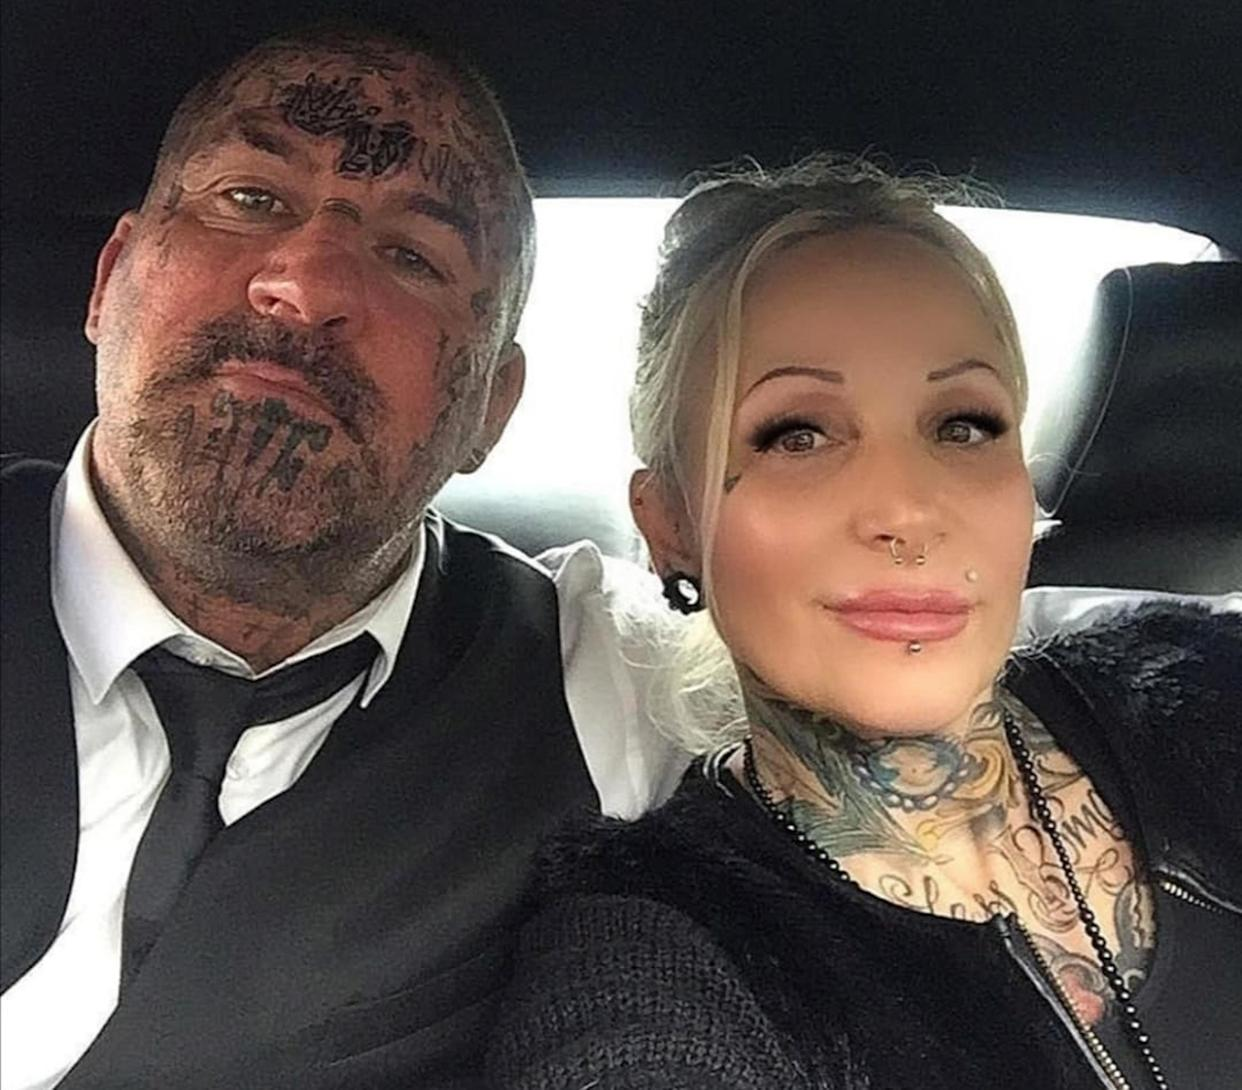 Paul and Annie Riggs, 49 and 52, say they are being targeted by 'neighbours from hell' due to their appearance. (Caters)